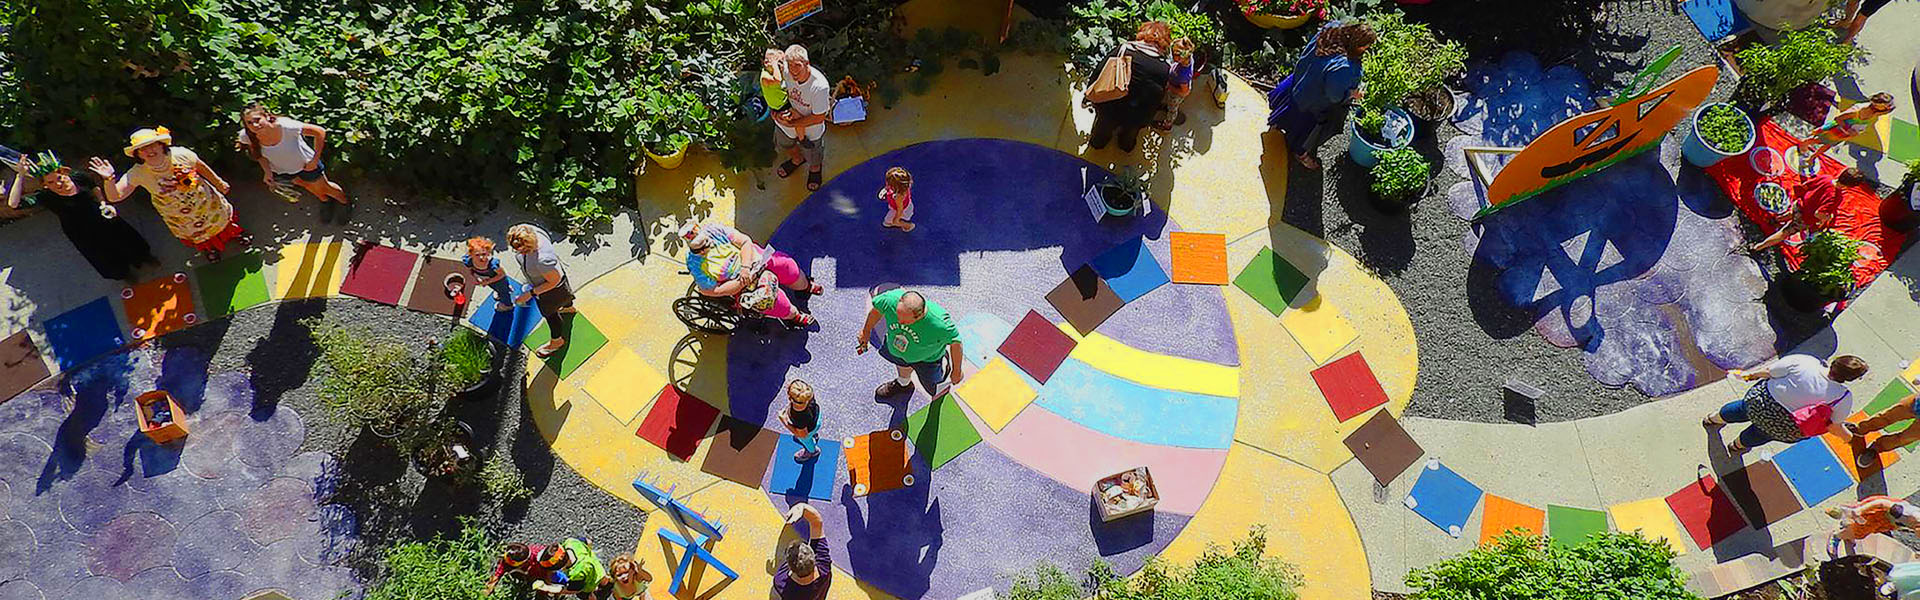 Overhead View Looking Down on Children's Edible